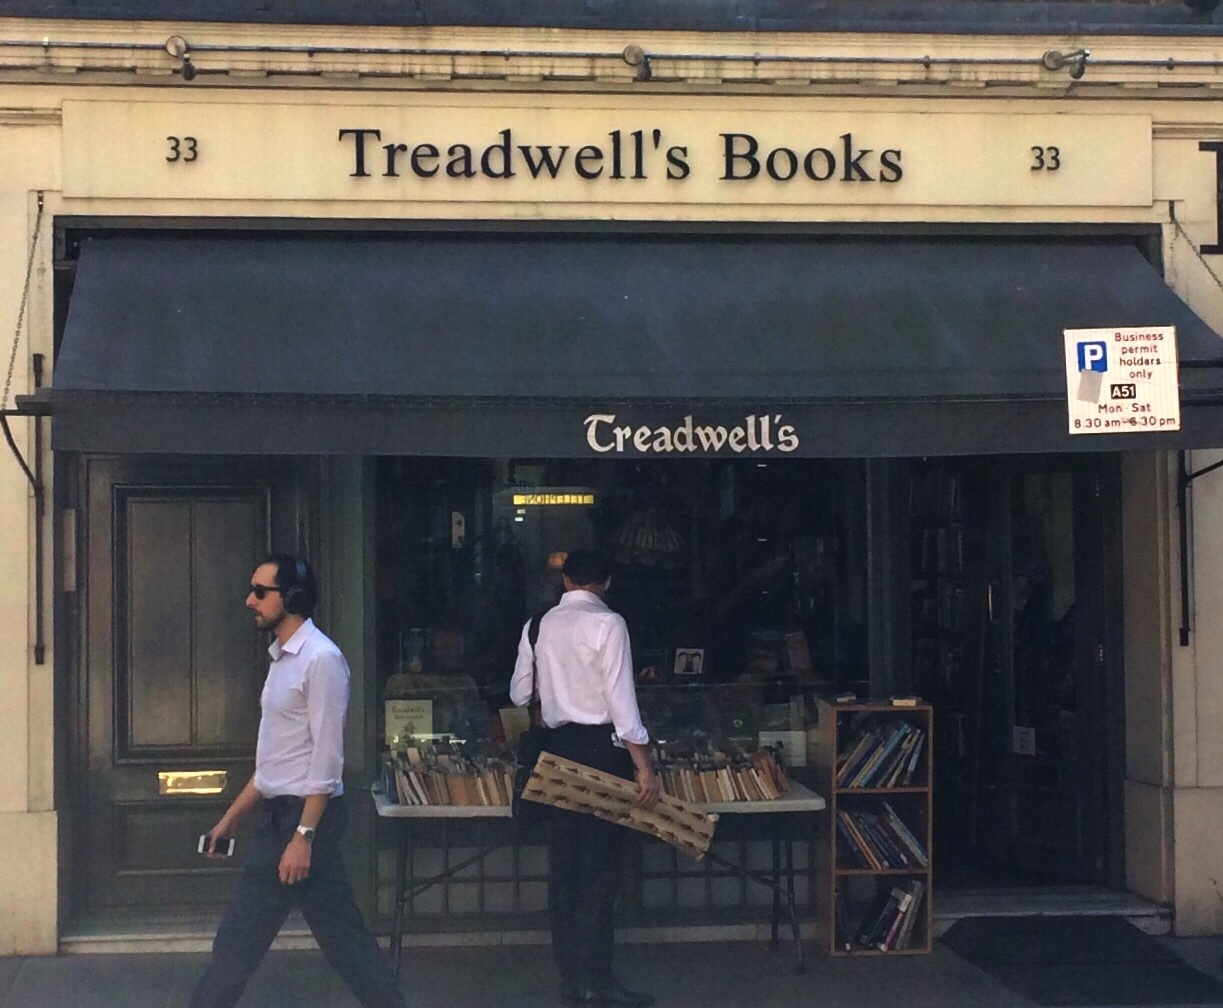 Treadwell's Store Front